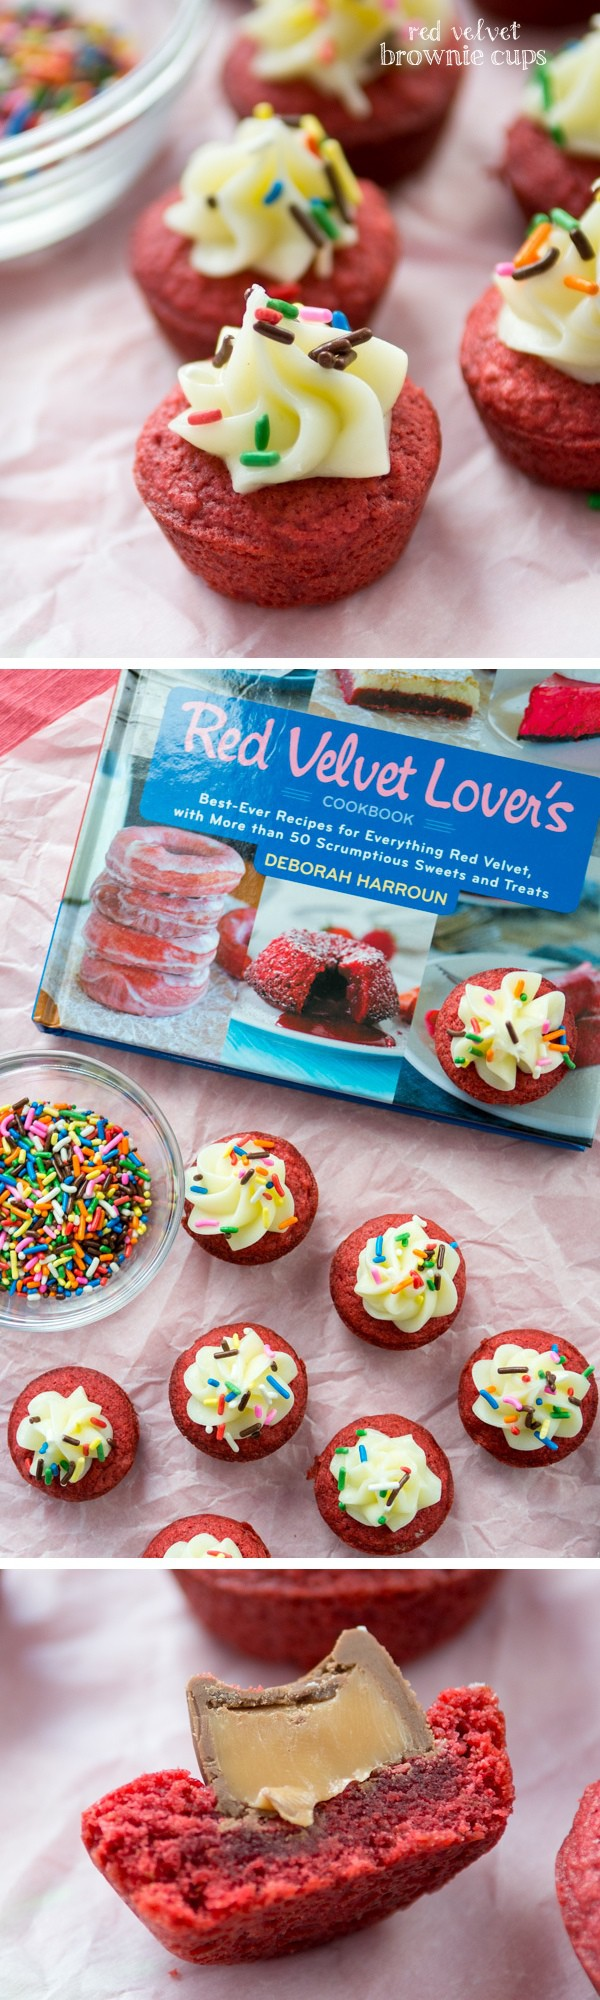 Red Velvet Brownie Cups with cream cheese frosting from The Red Velvet Lover's Cookbook (or stuff them with Rolos!)